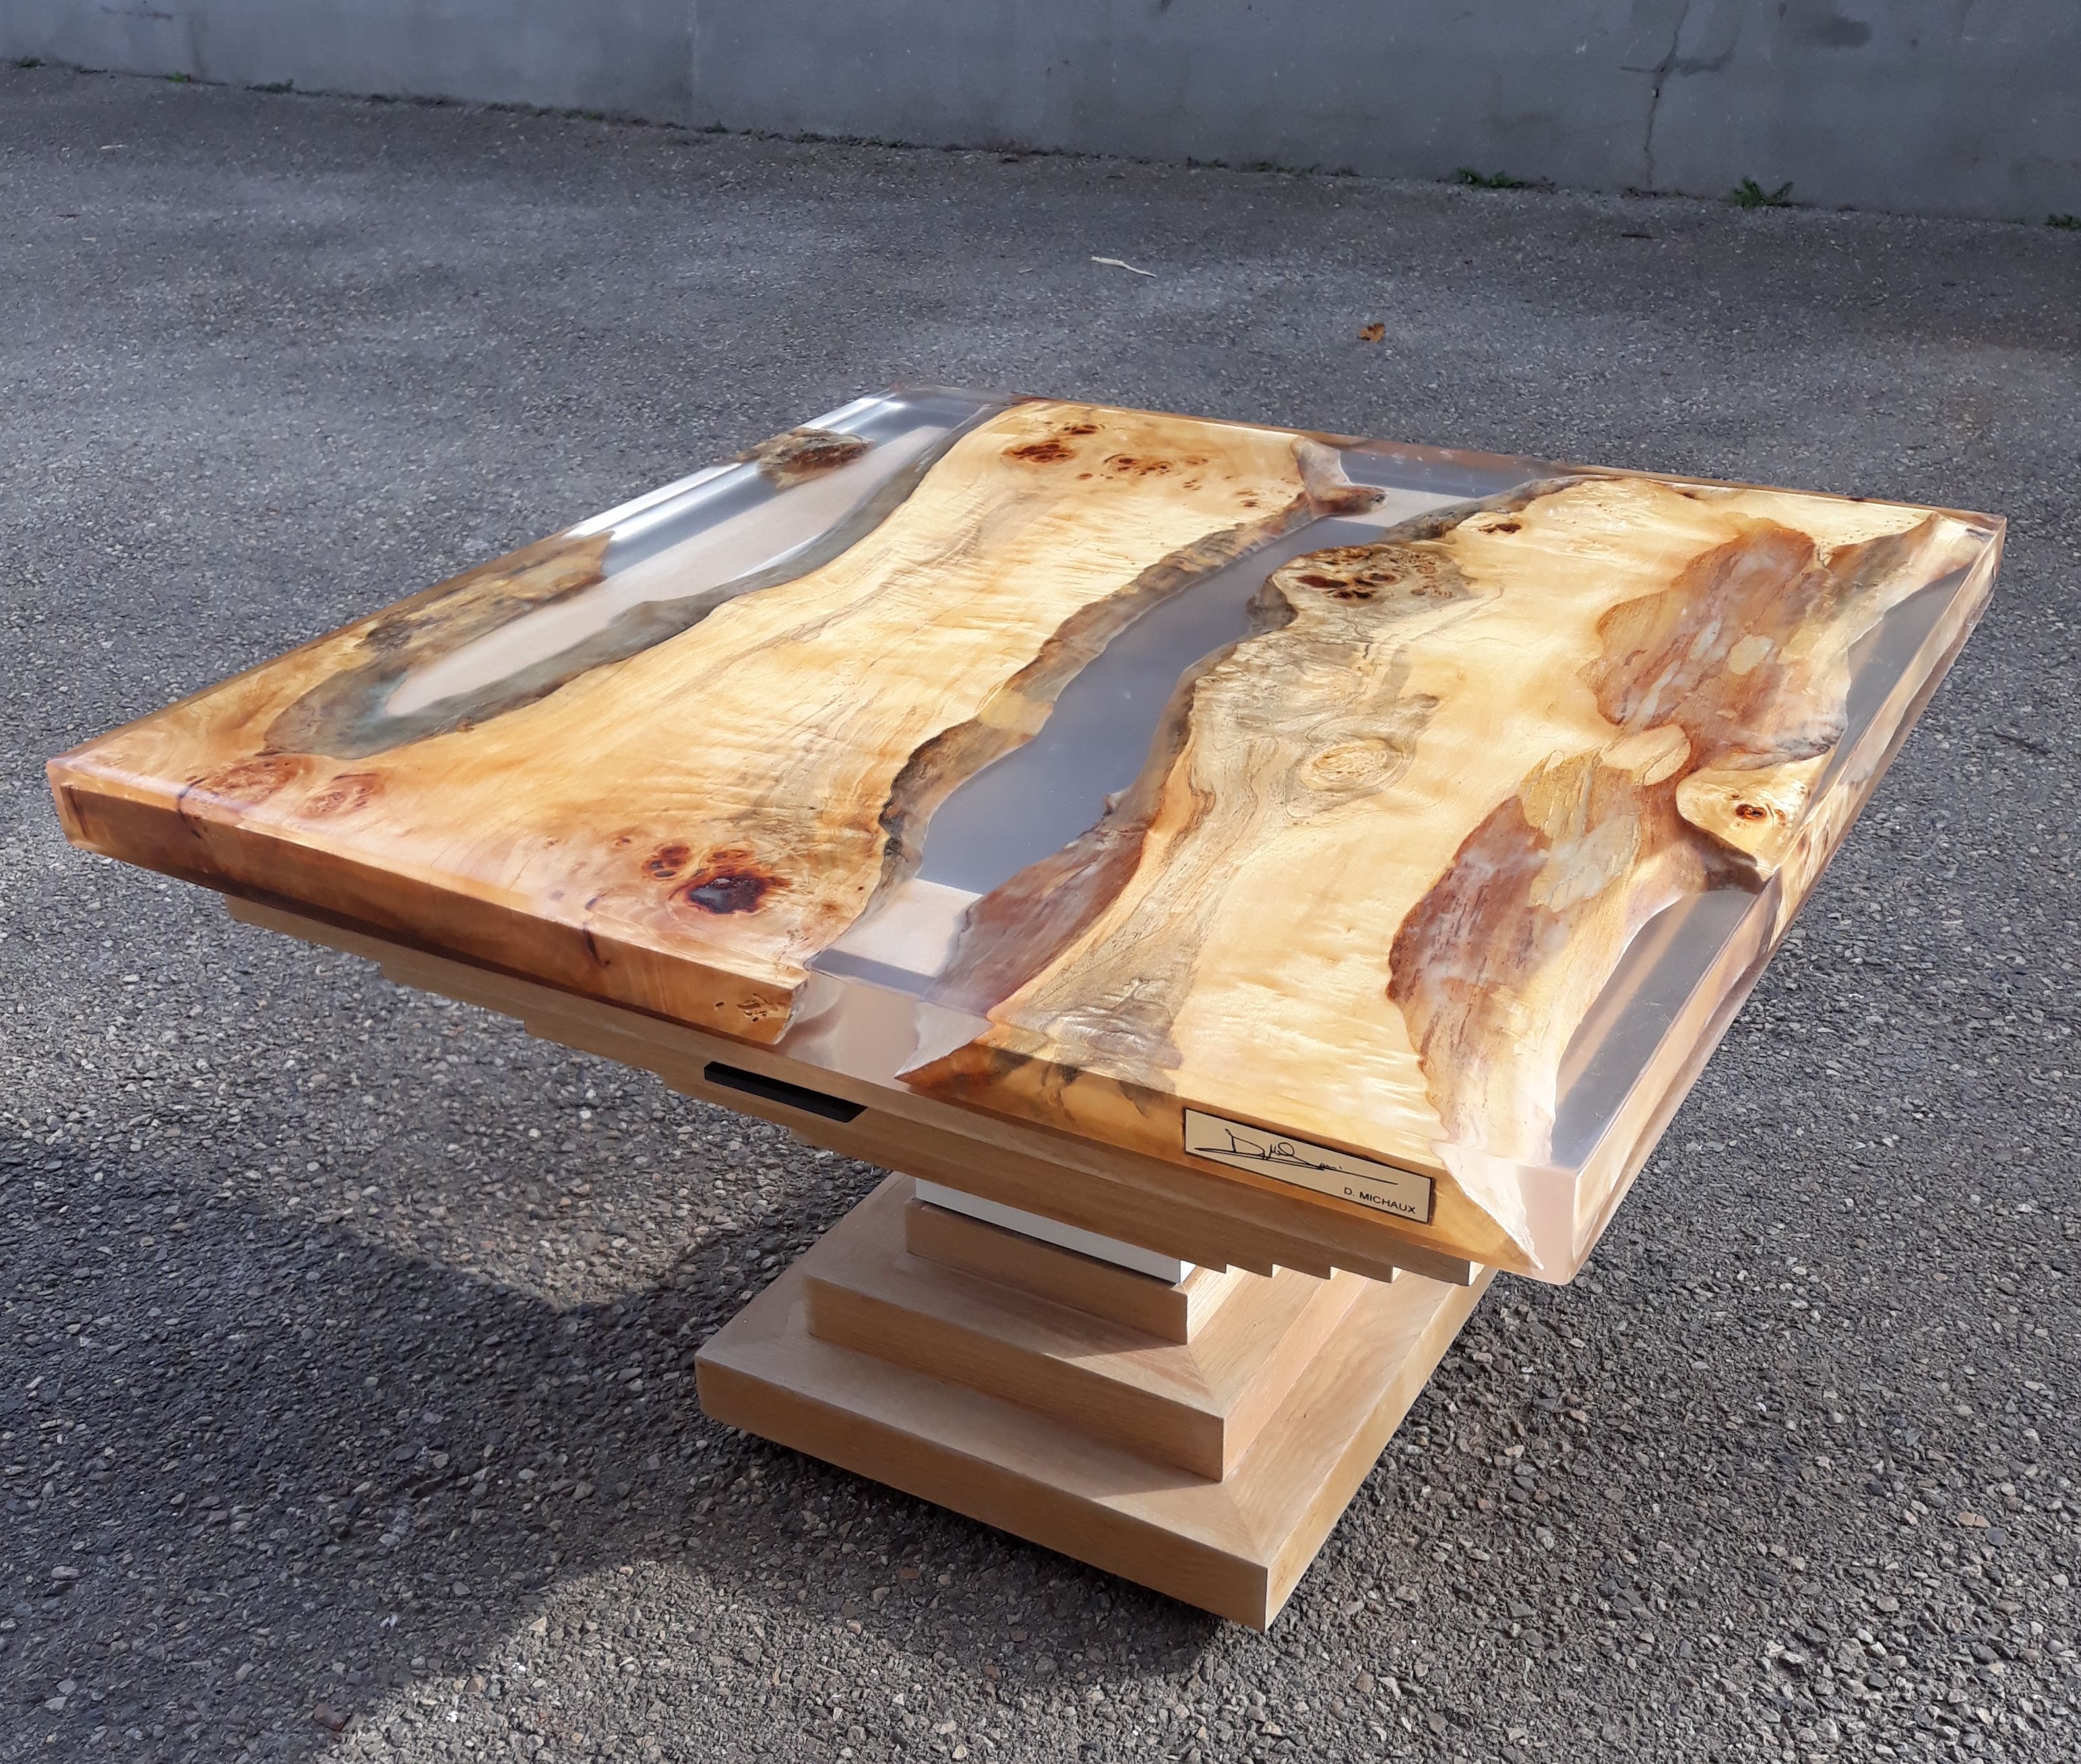 Table Basse En Resine Et Bois Table Basse Idee De Decoration Bois